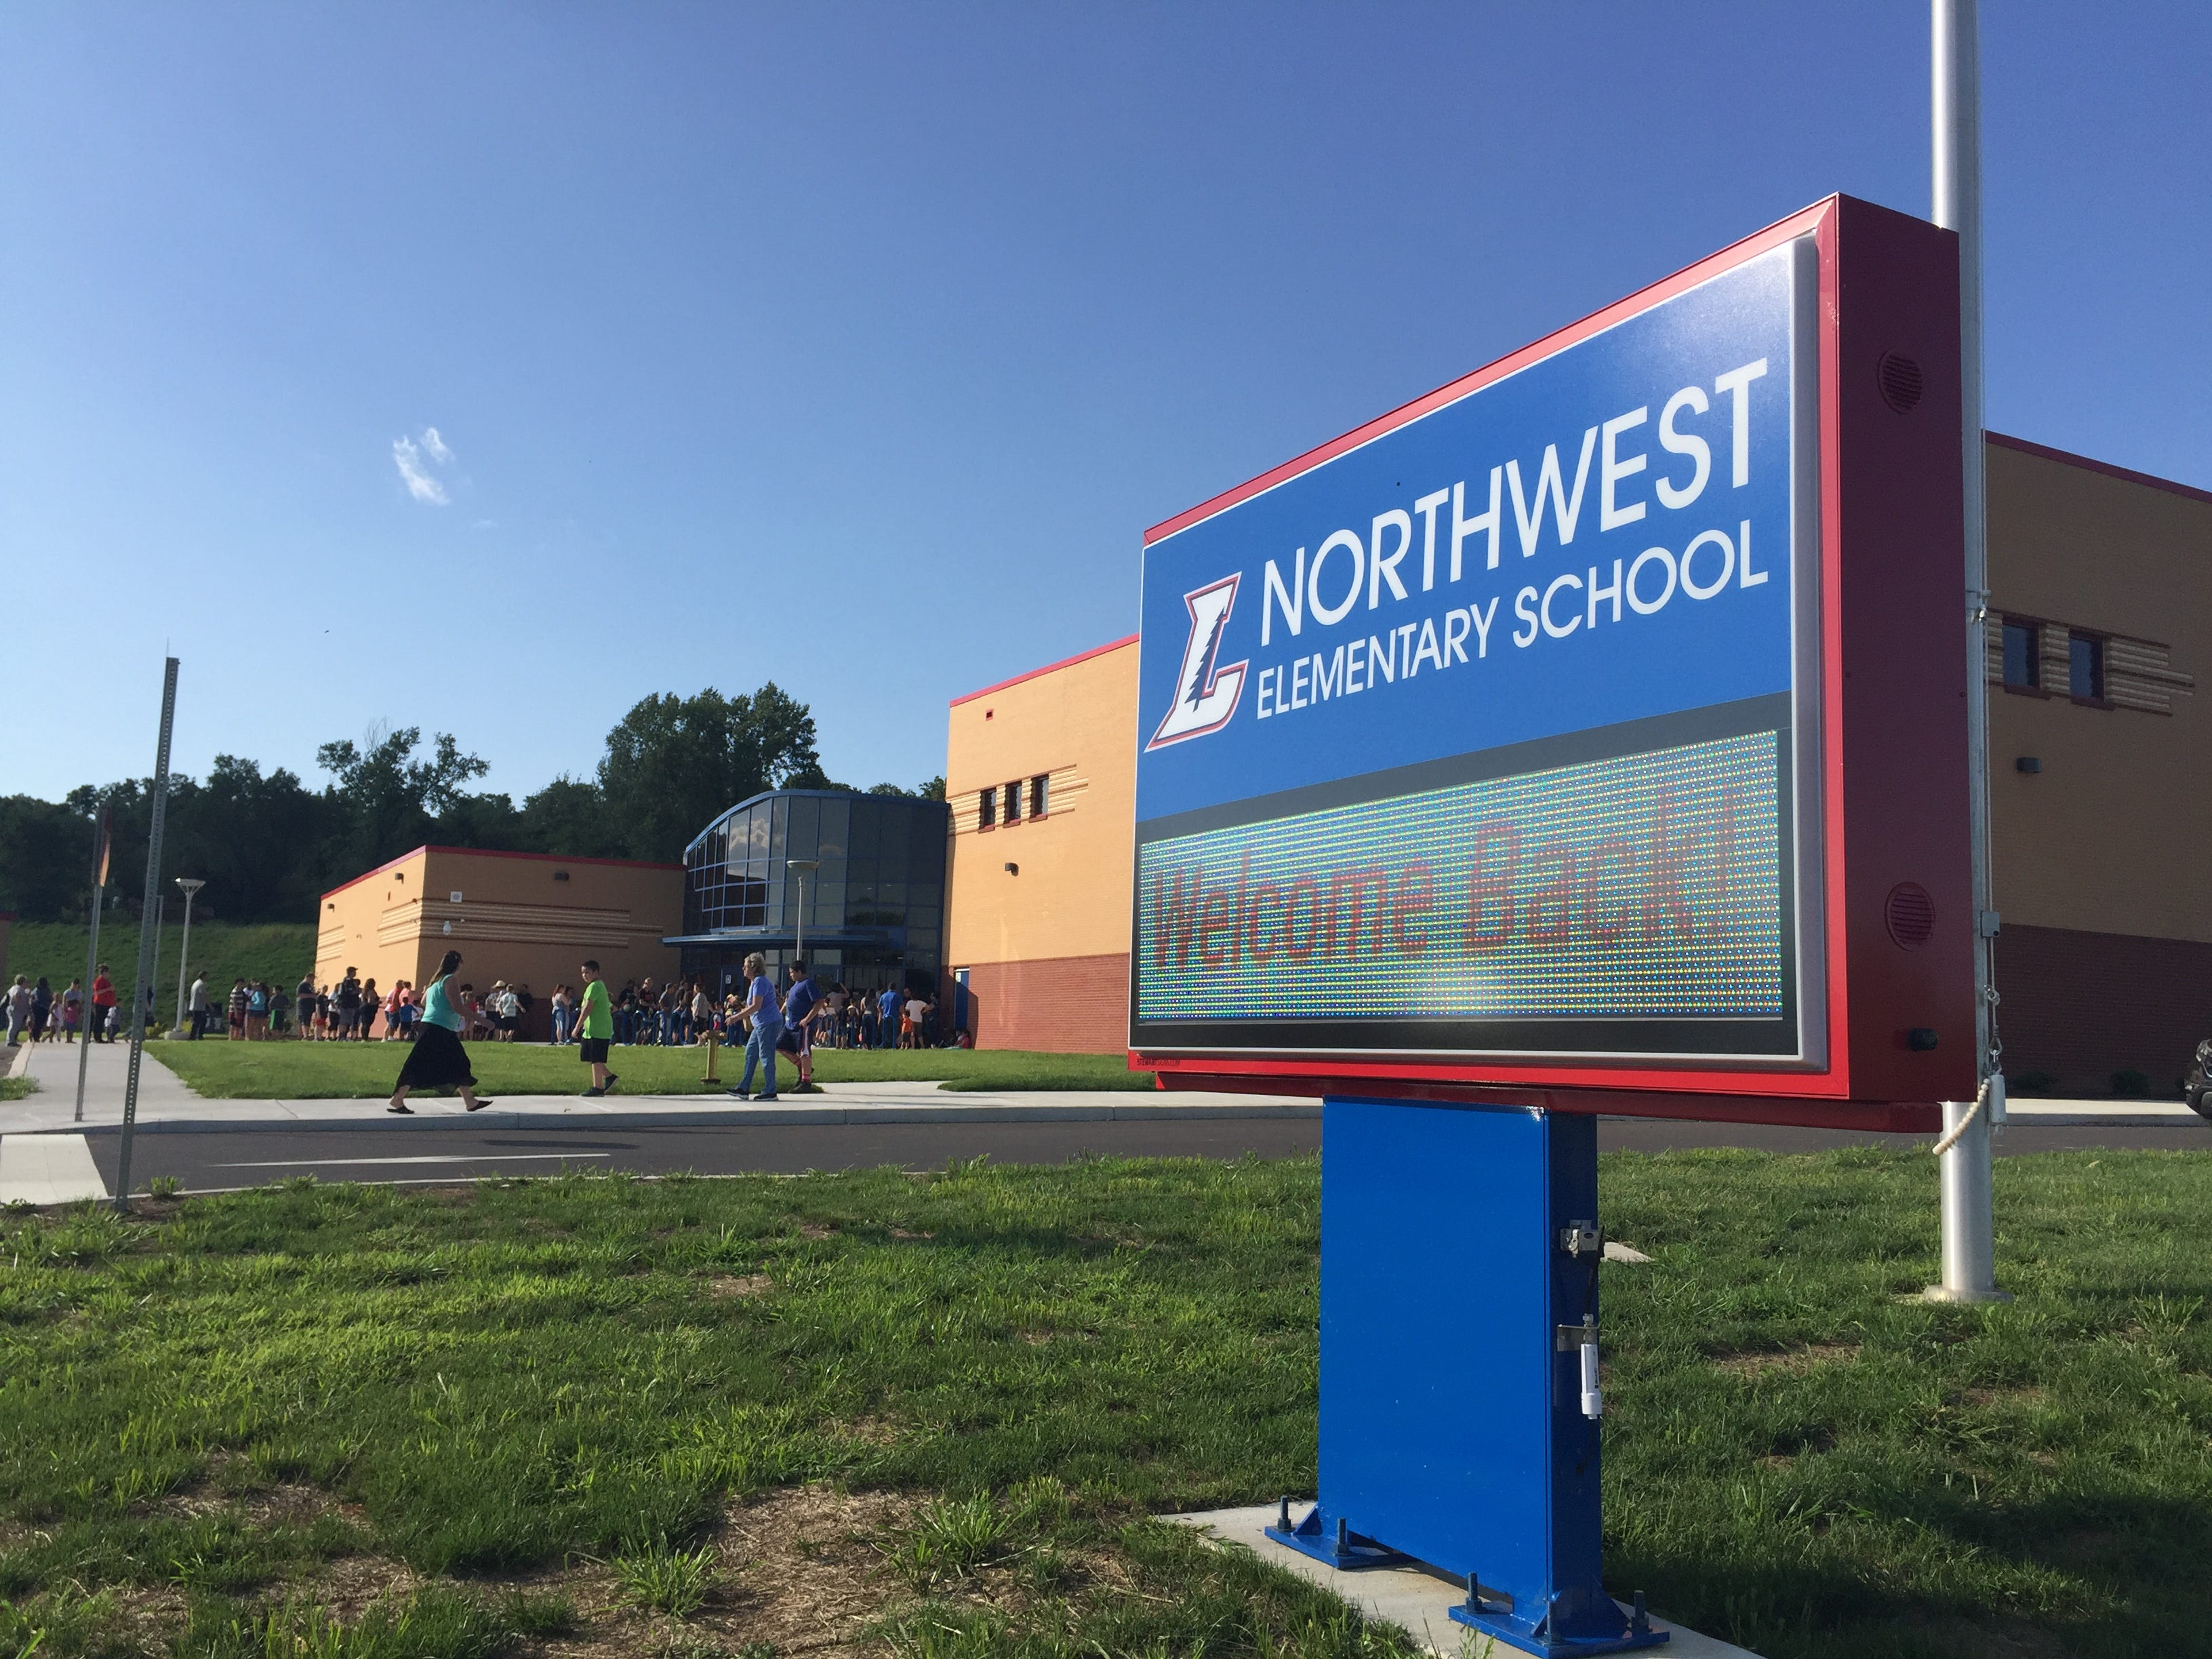 Parents and students line up for an open house at Lebanon School District's new Northwest Elementary School Aug. 23, 2018.